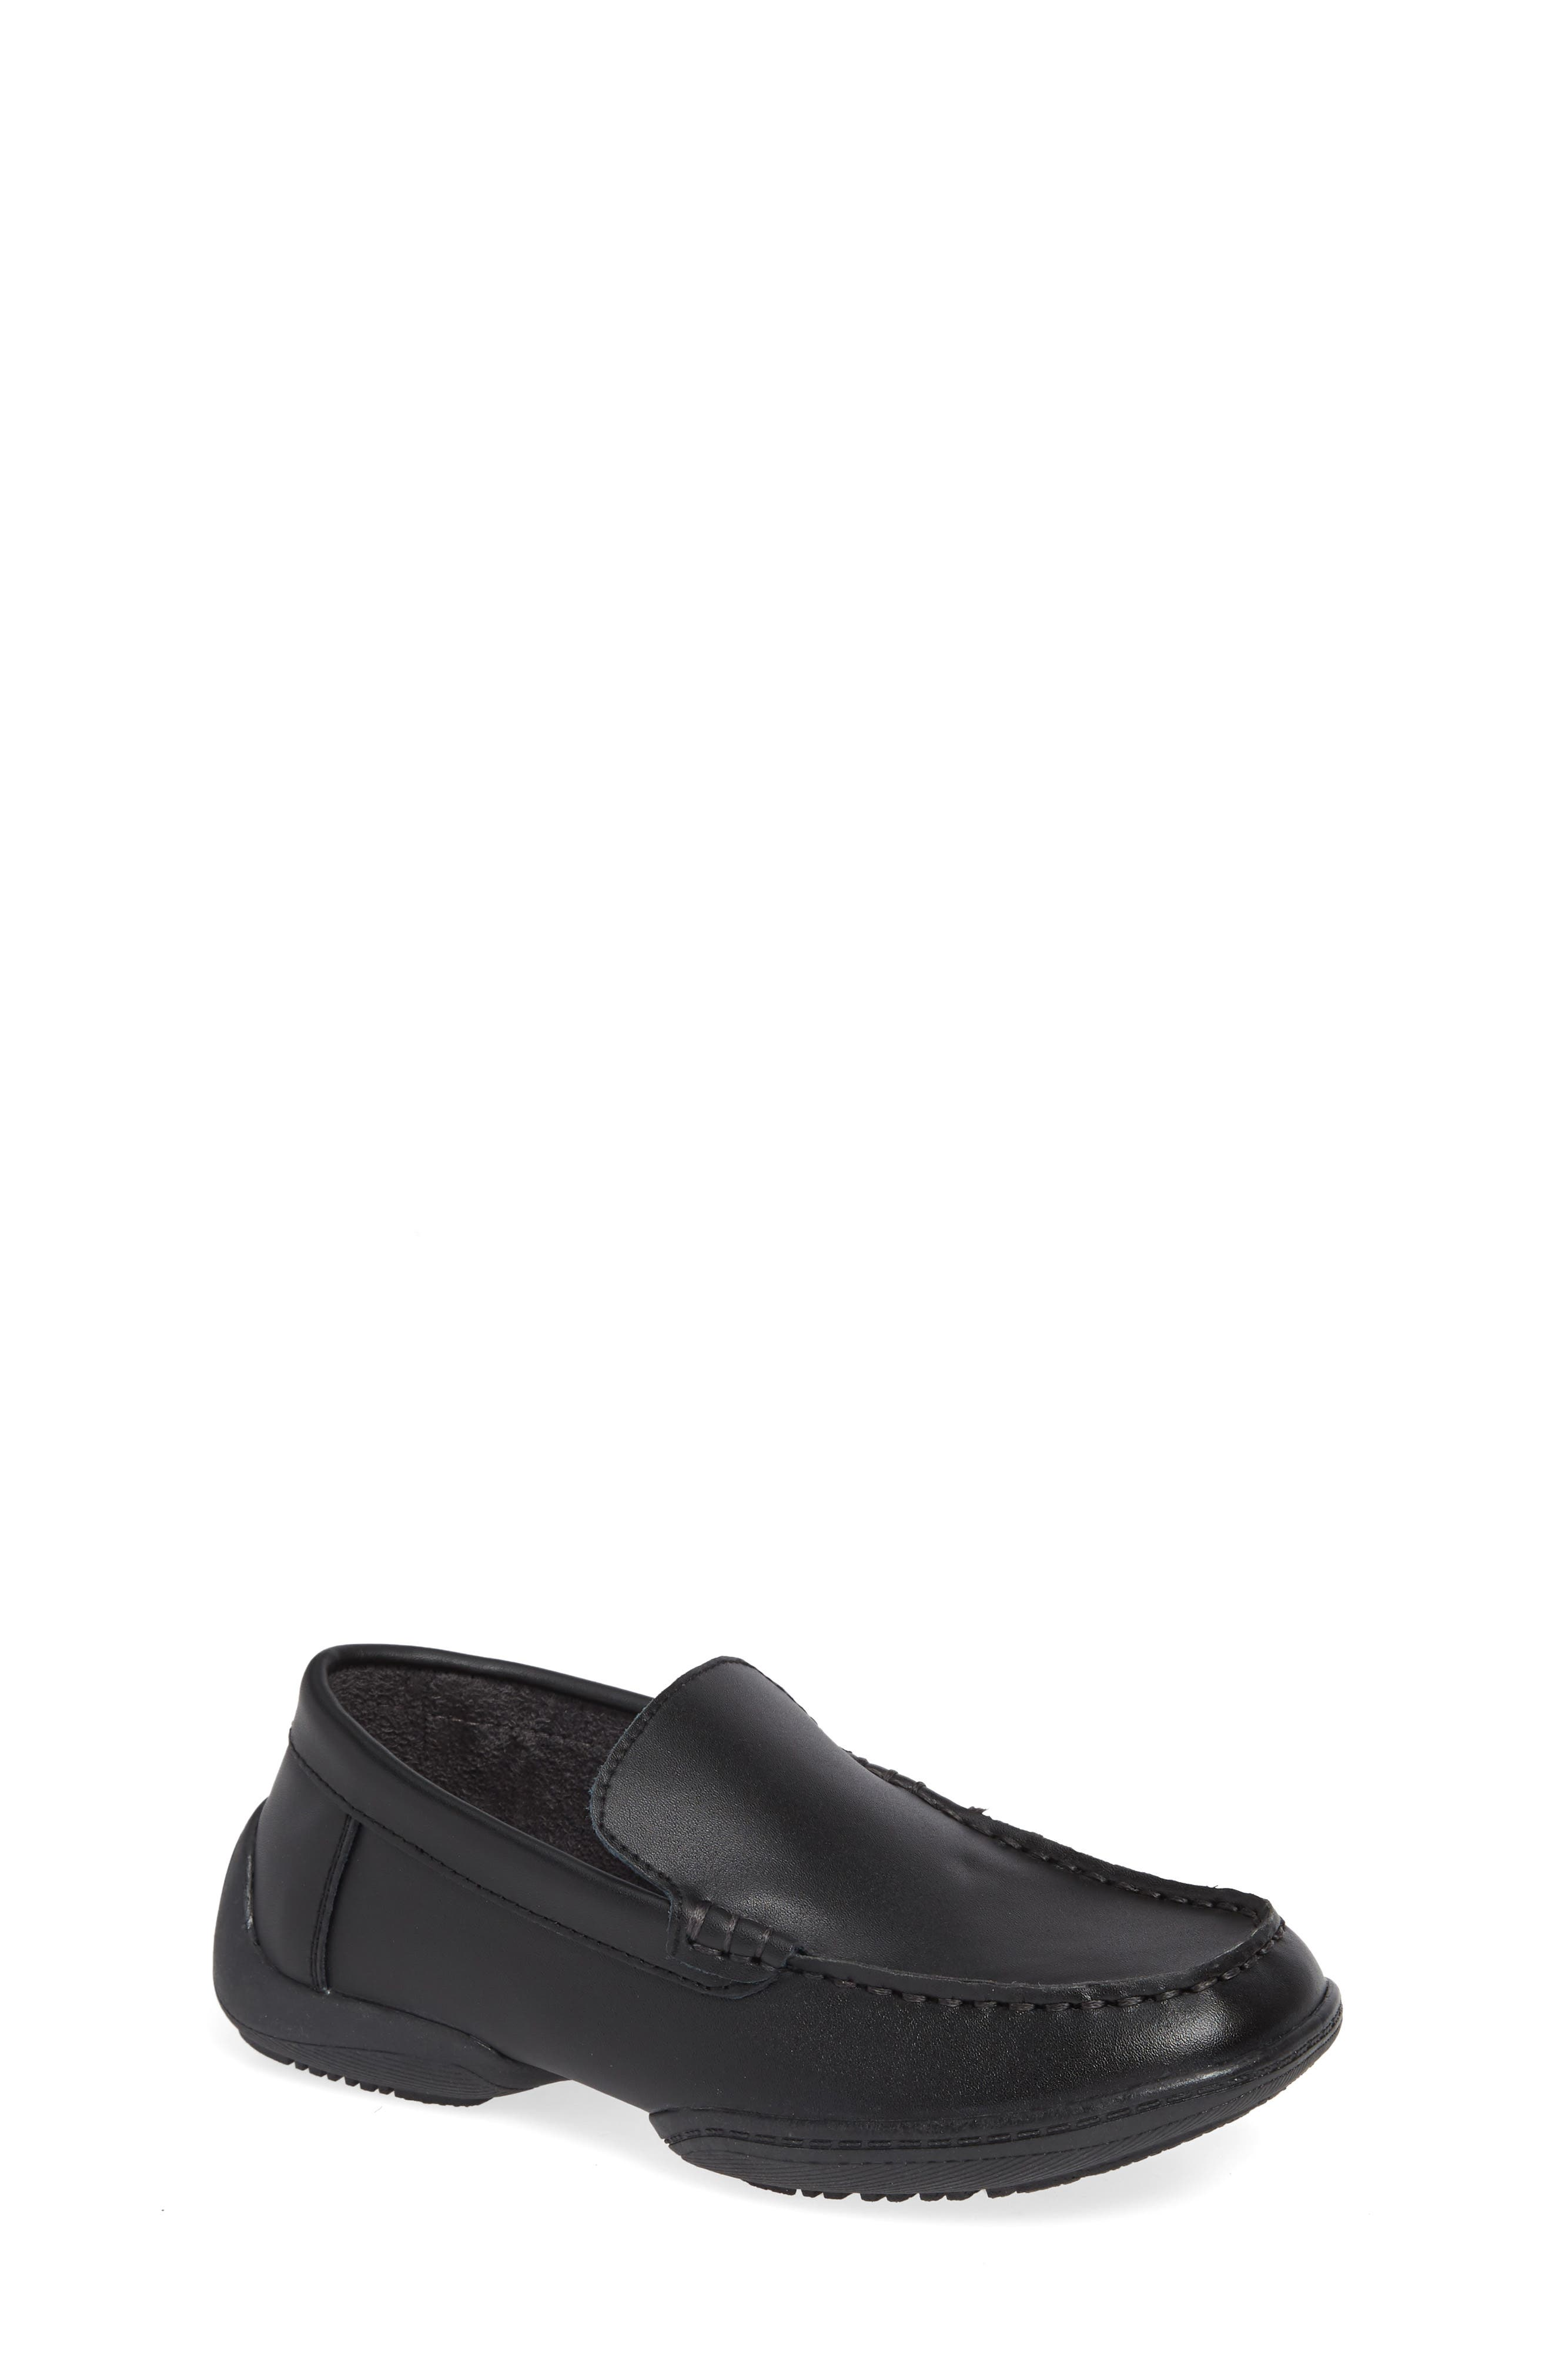 Driving Dime Moccasin,                         Main,                         color, DARK BLACK LEATHER